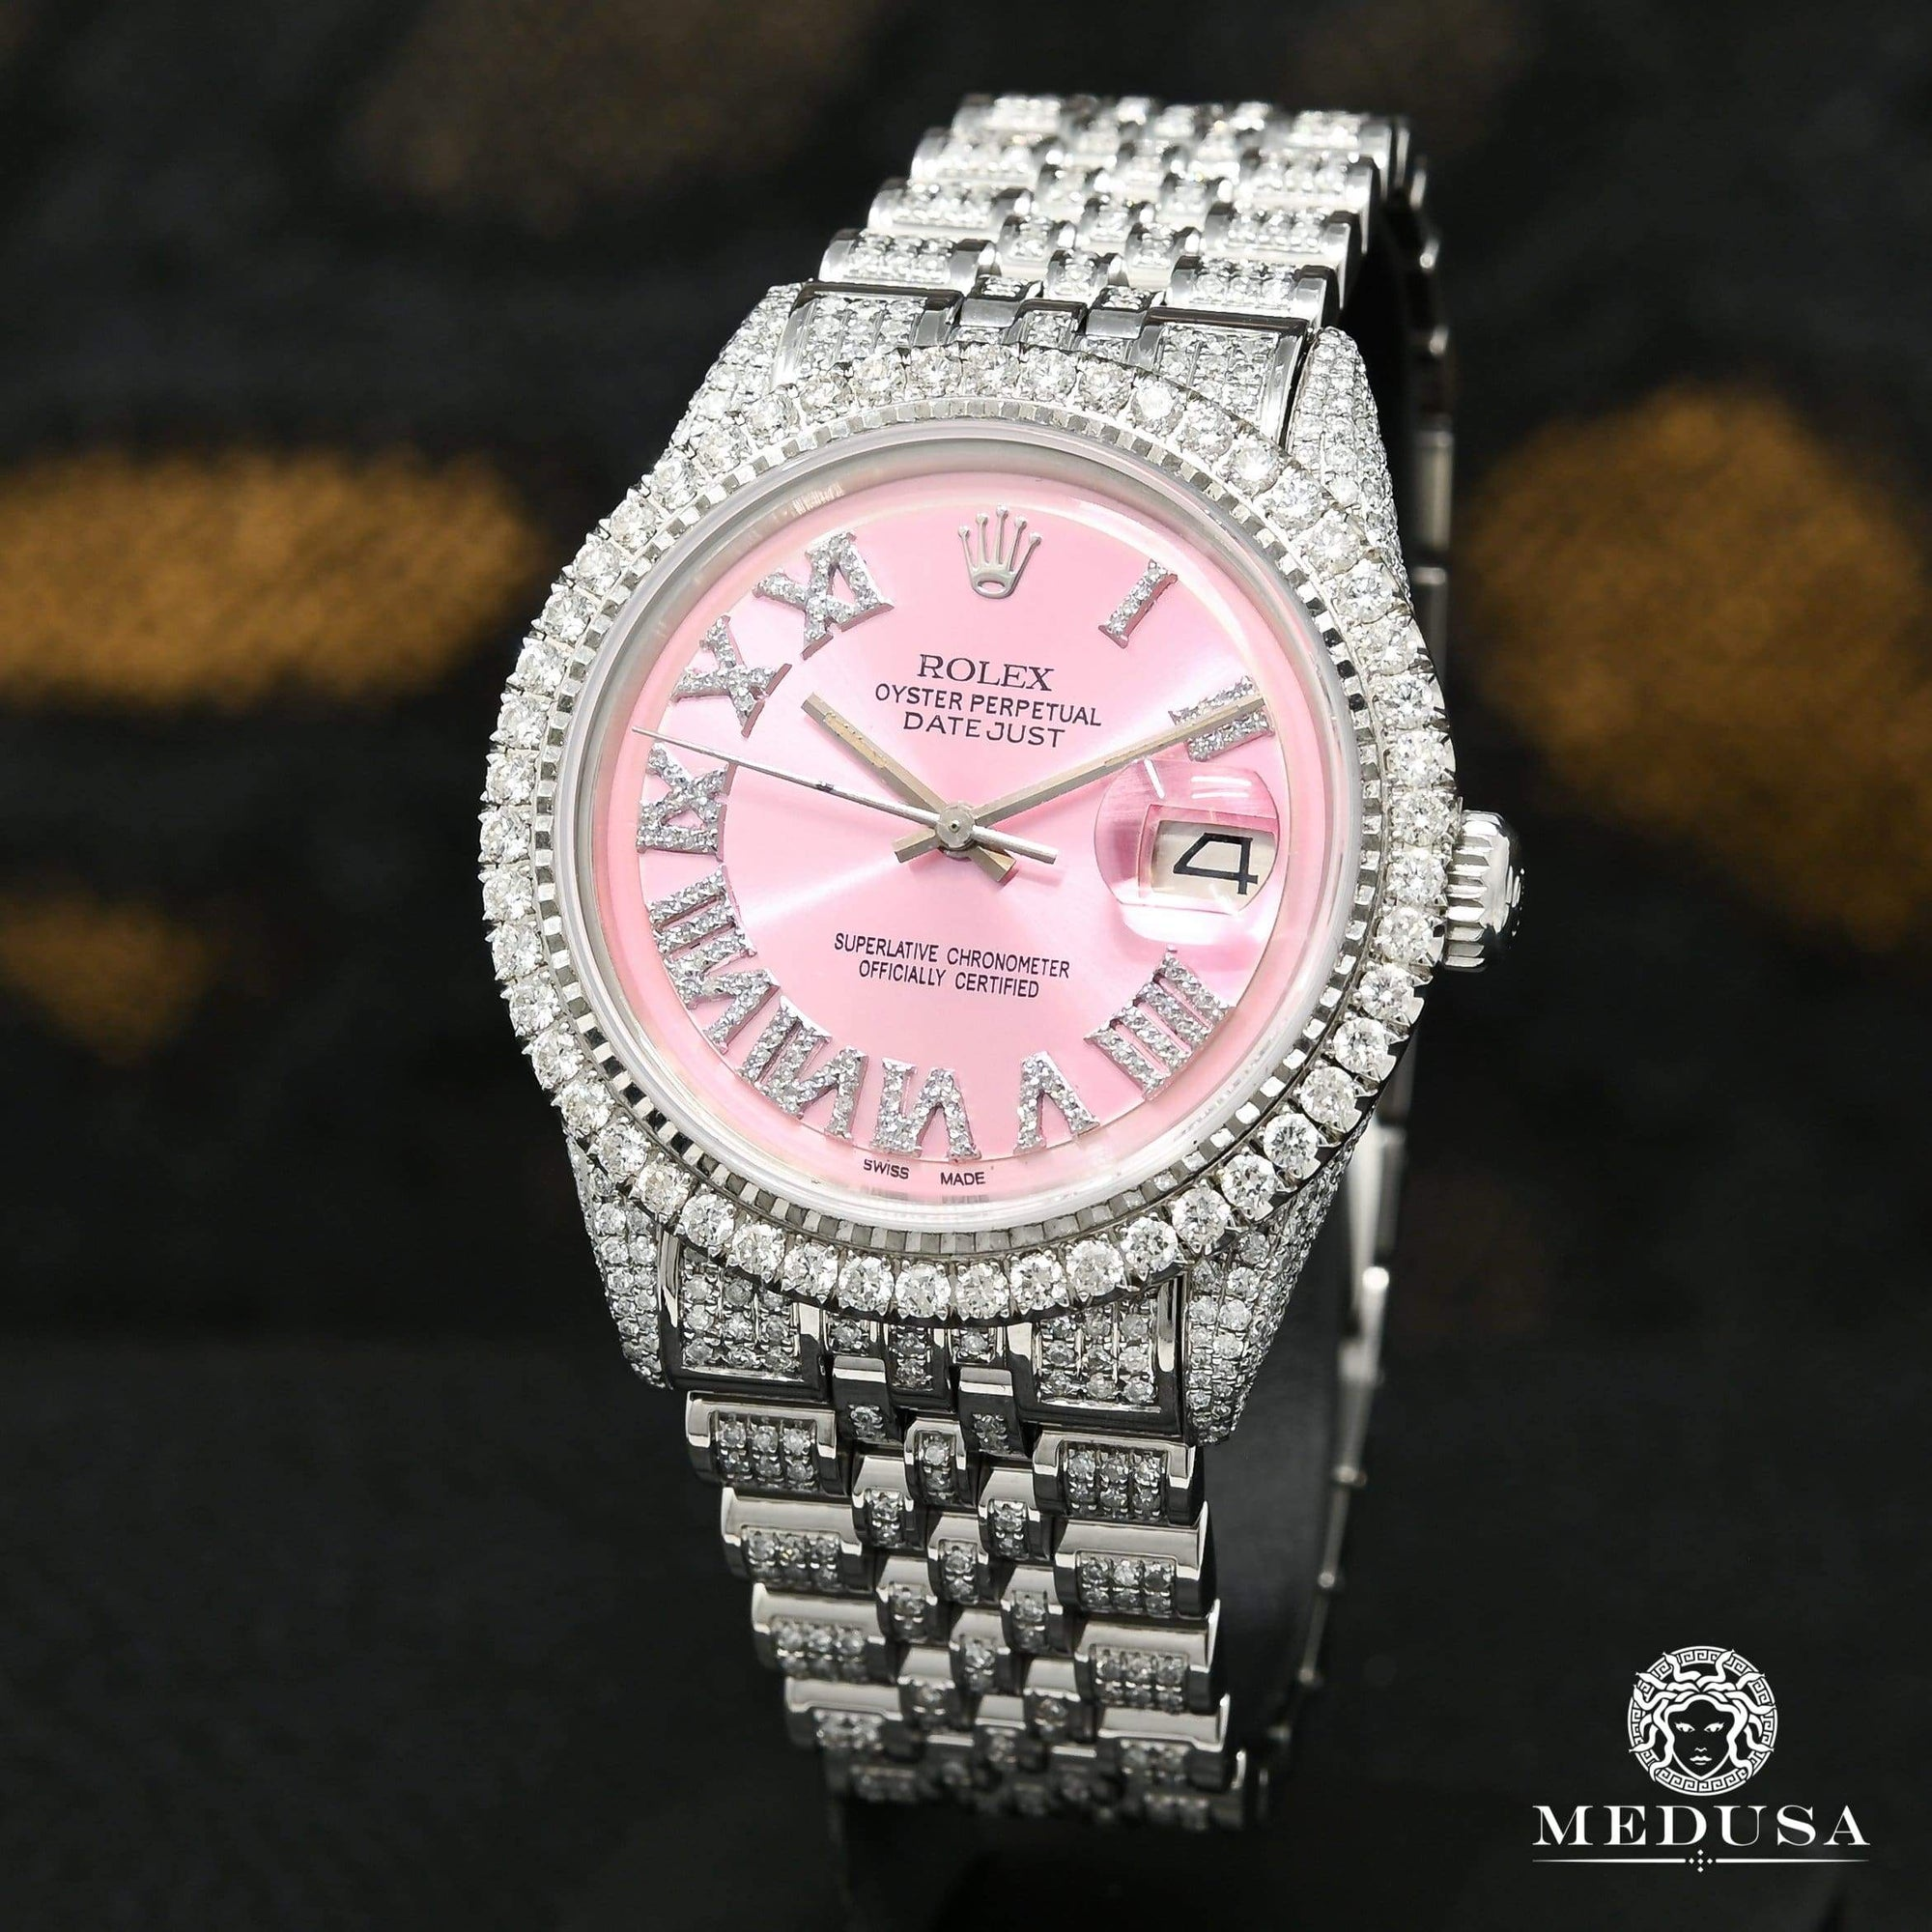 Rolex Datejust 36mm - Pink Iced Out